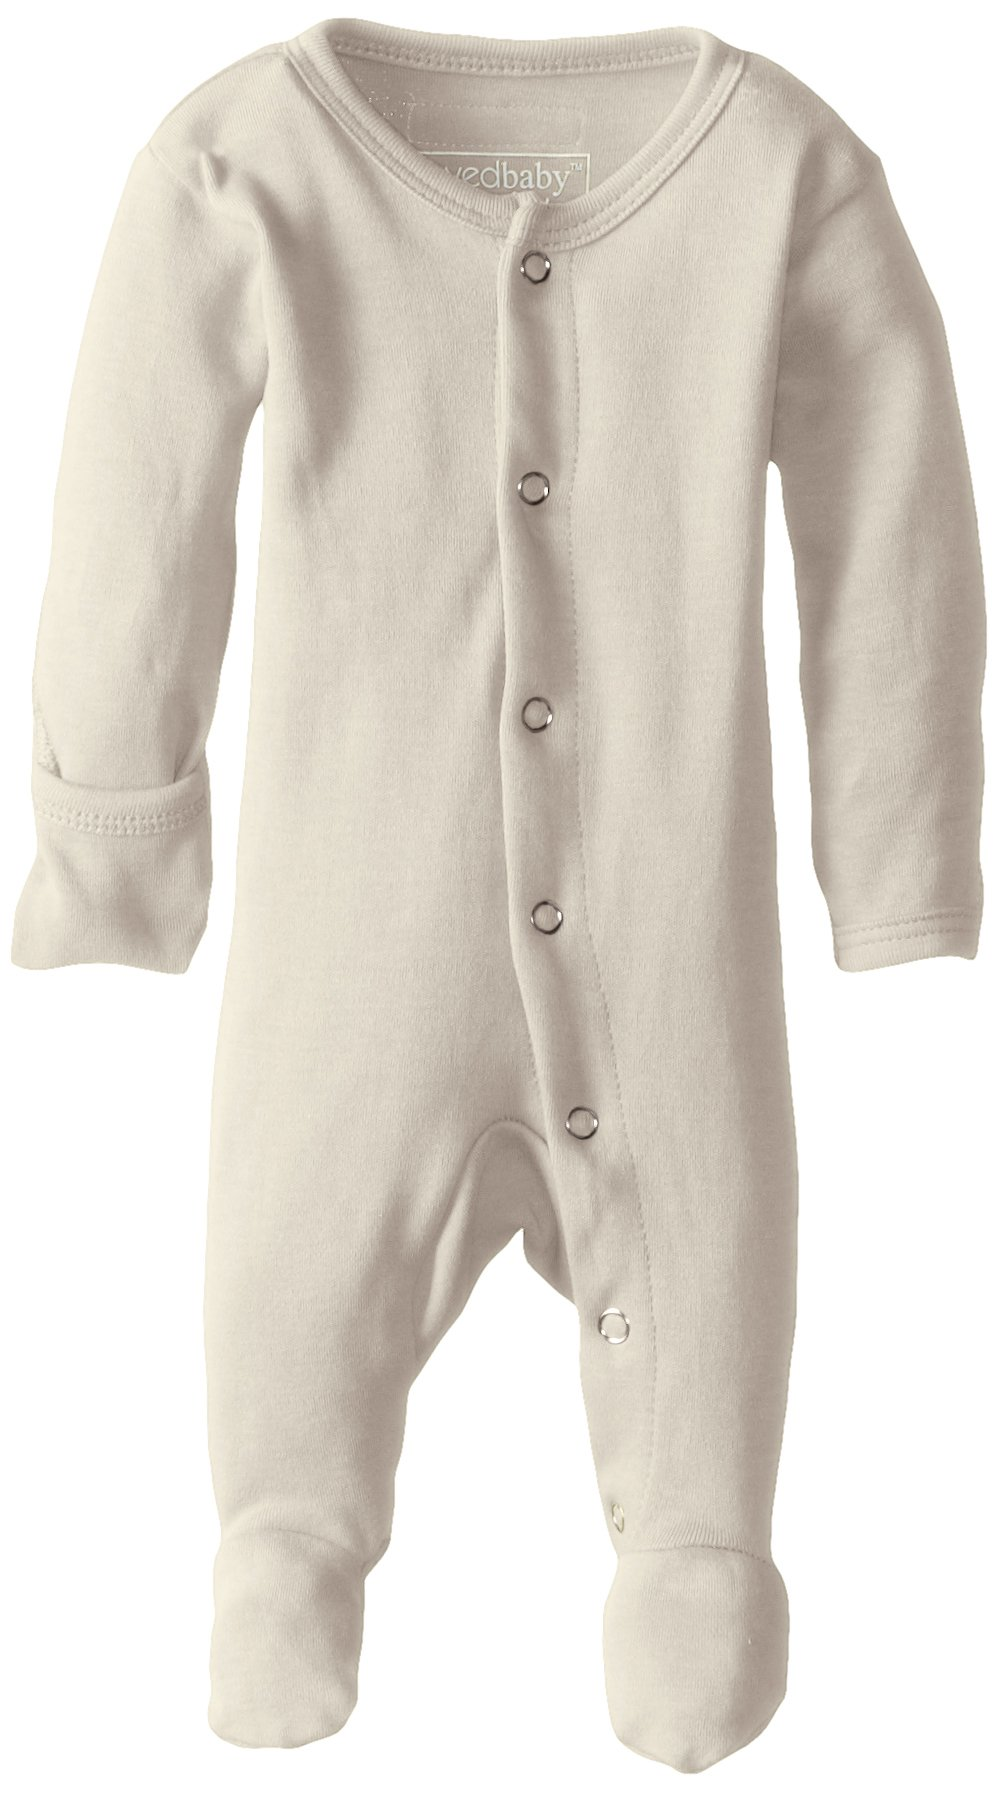 L'ovedbaby Unisex-Baby Organic Cotton Footed Overall, Beige, 0/3 Months